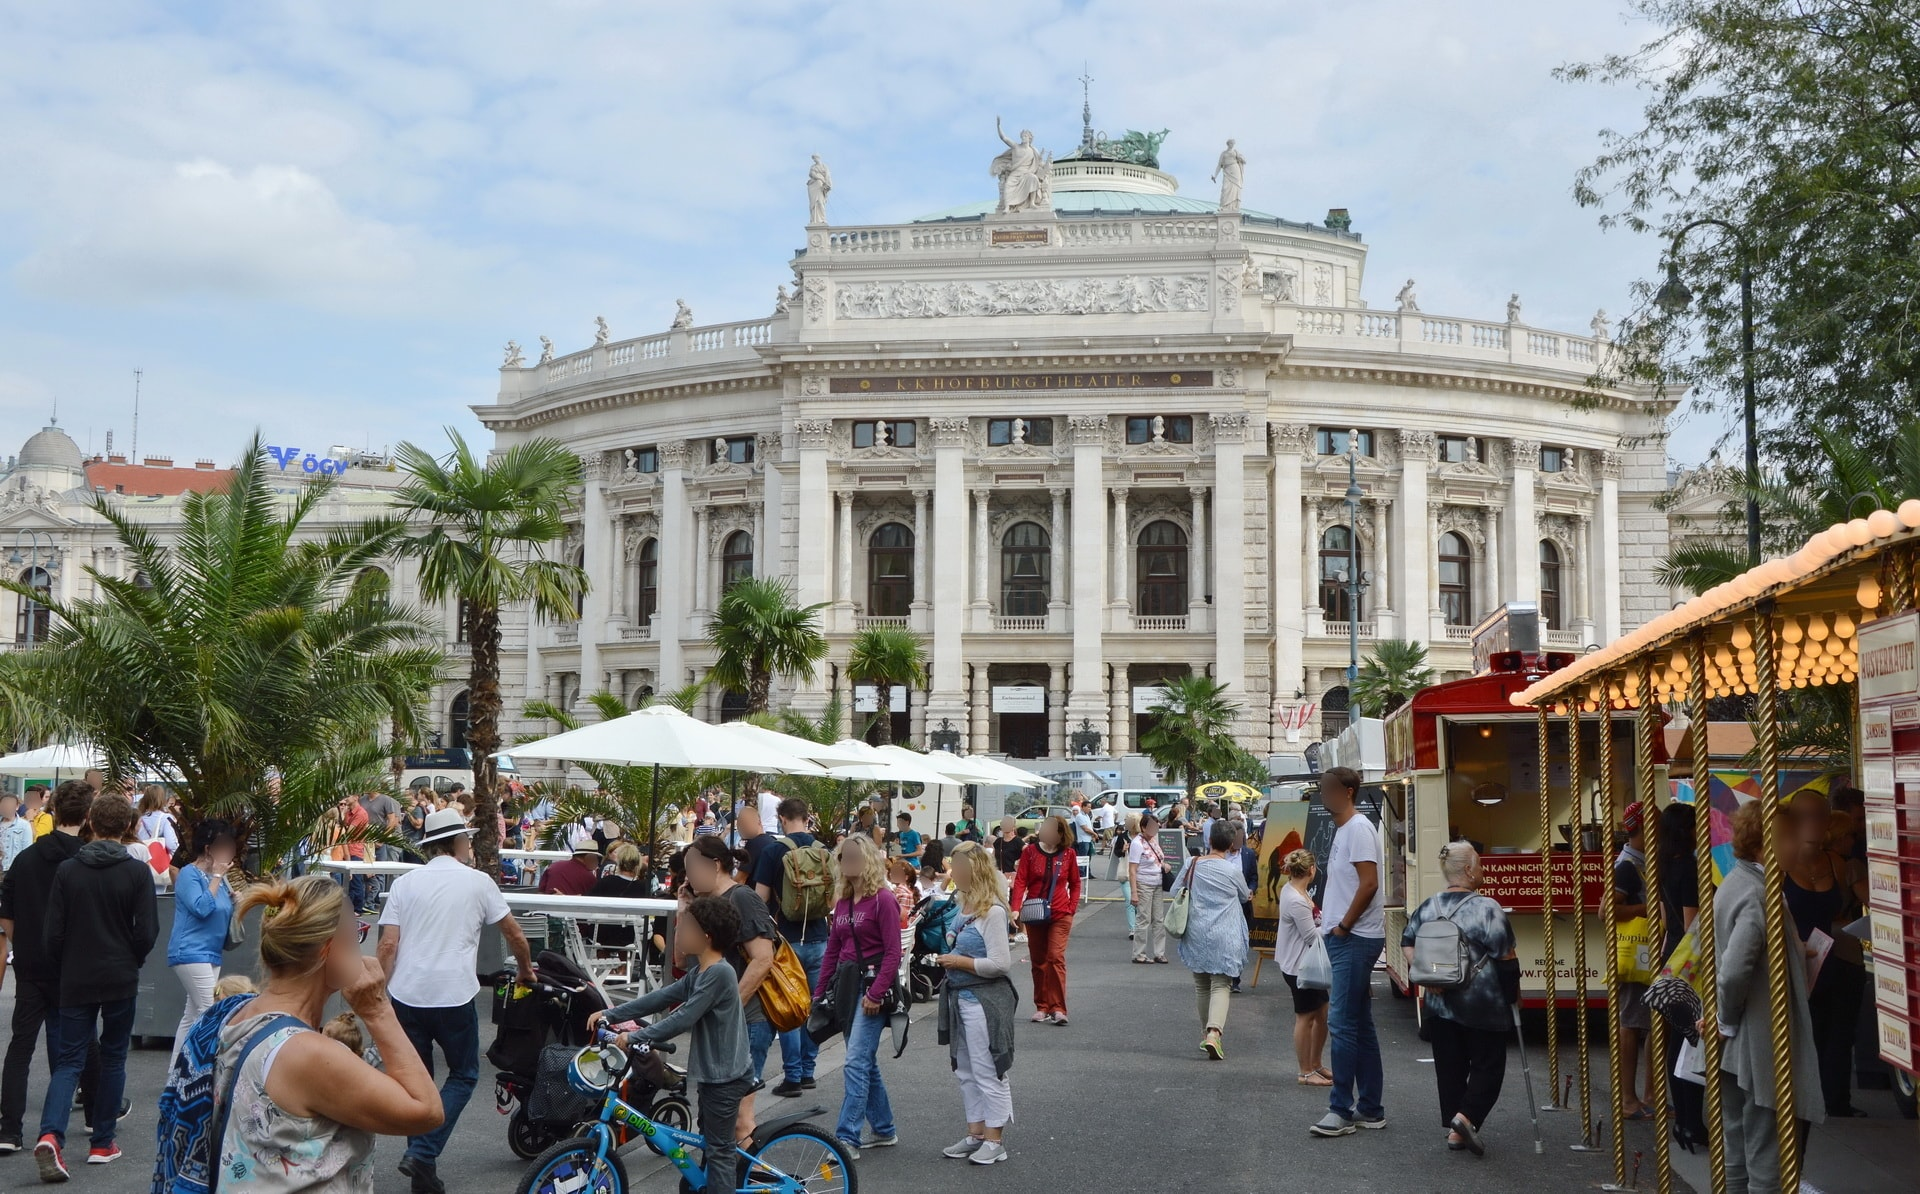 Burgtheater is the National Theatre of Austria